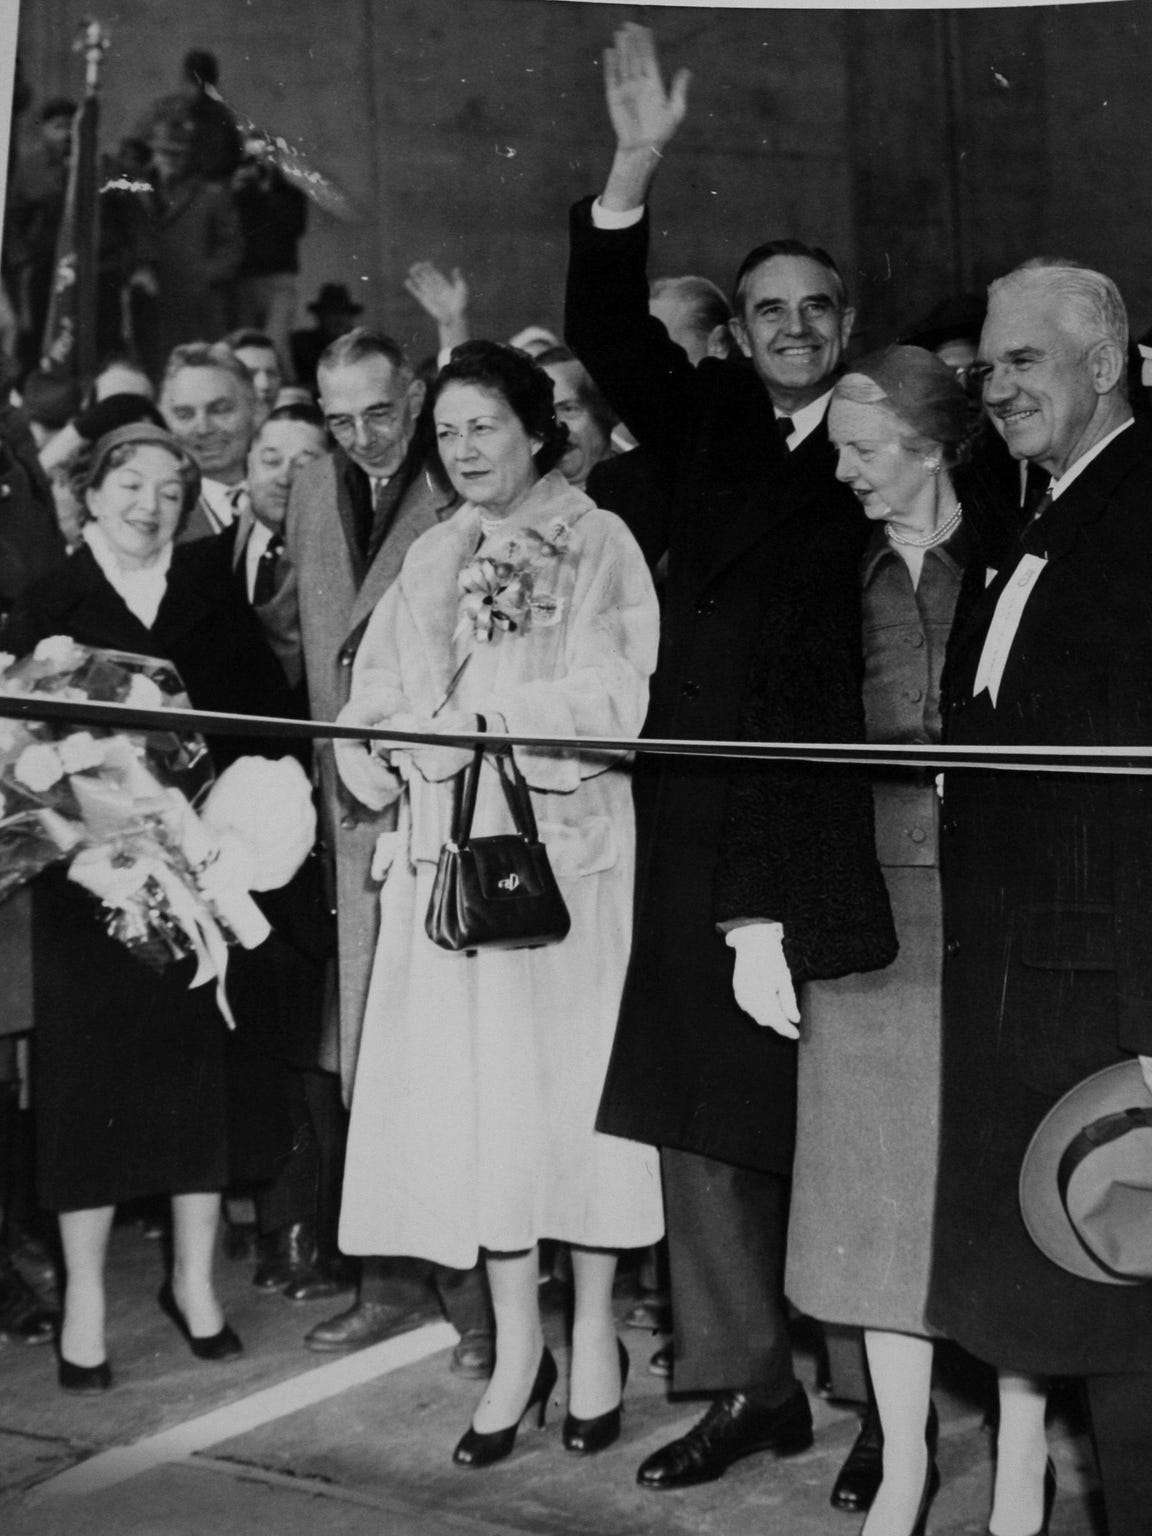 New York Gov. Averell Harriman waving, center, and